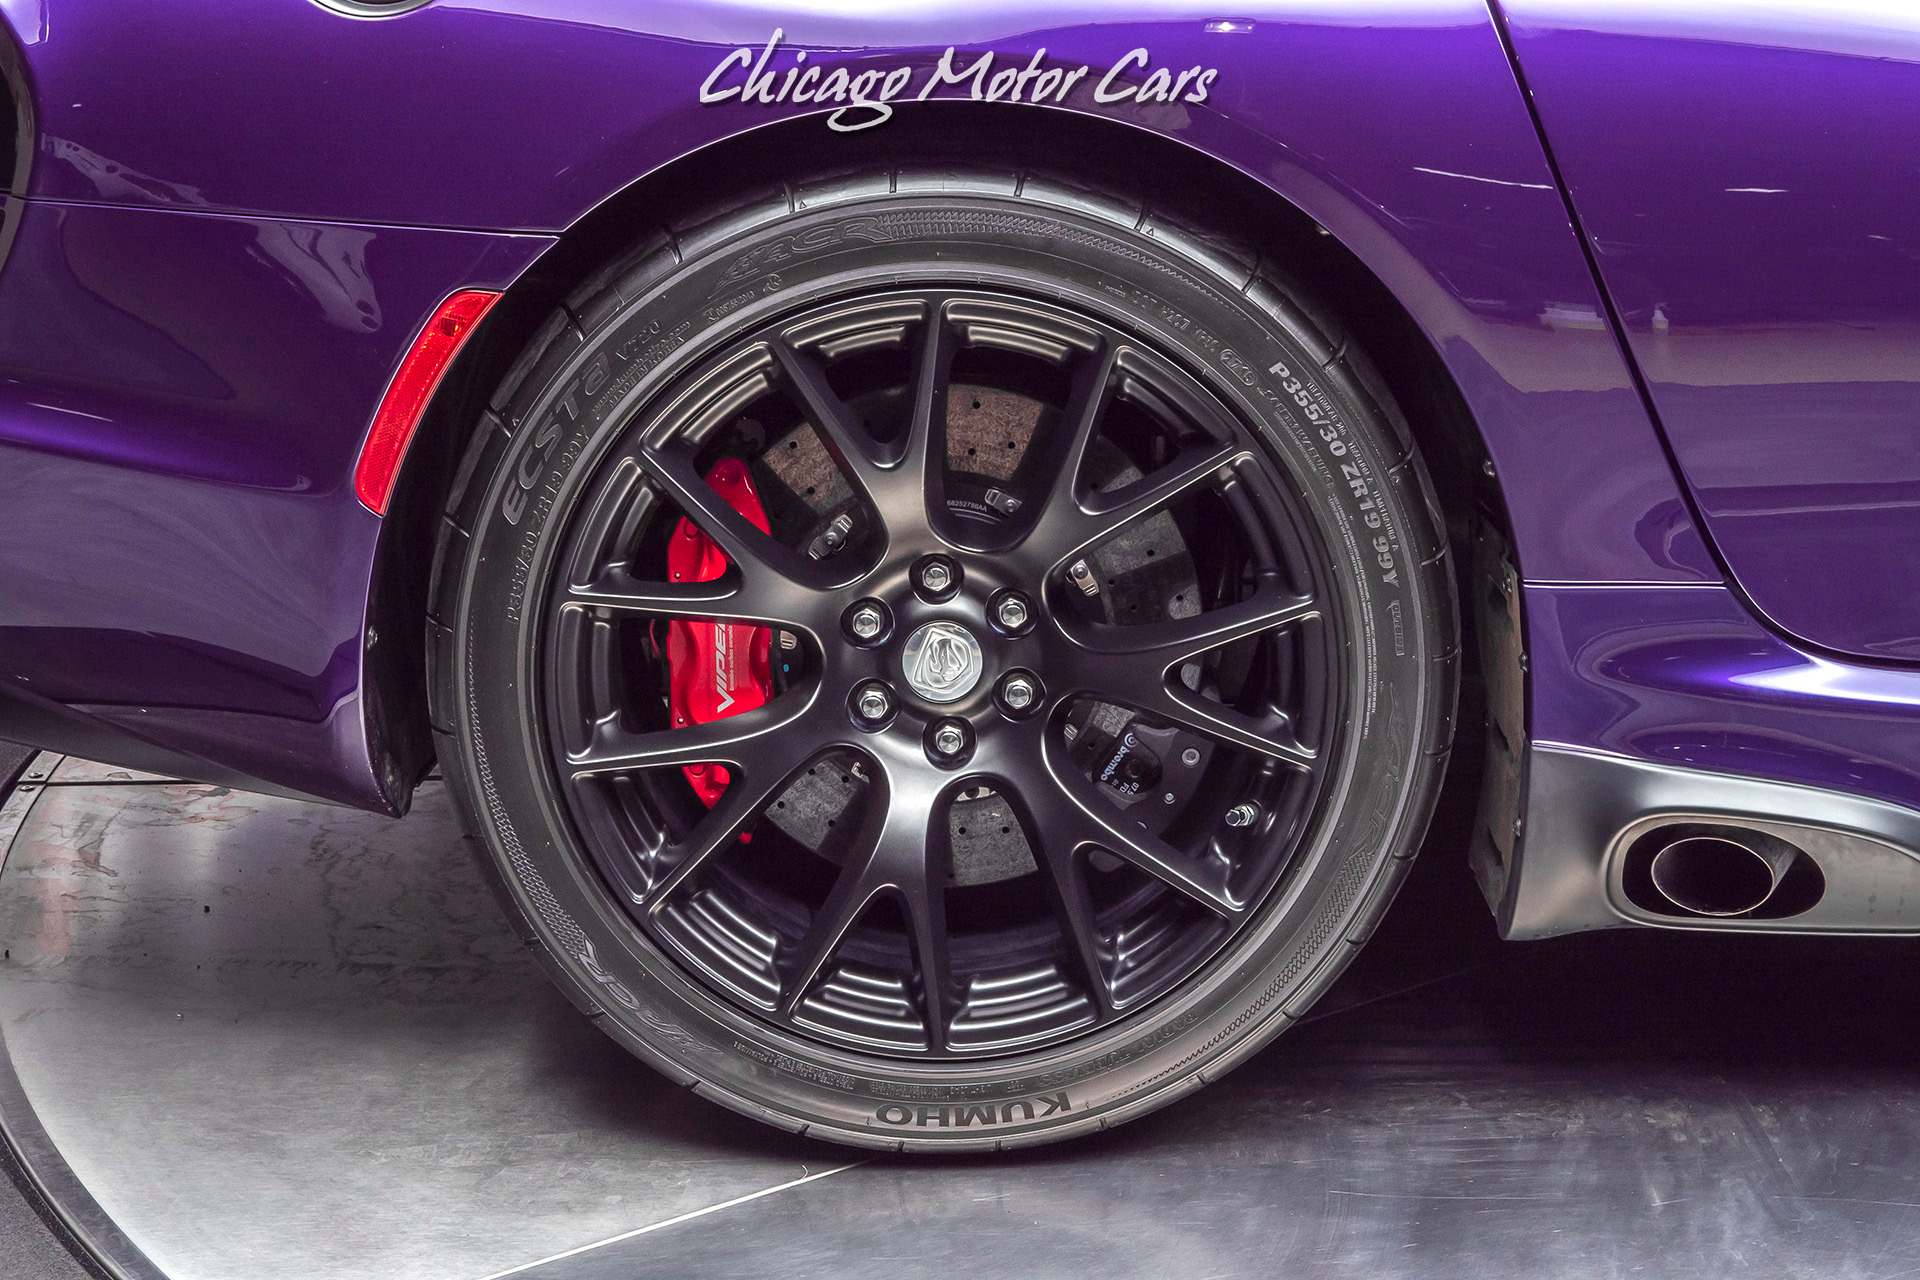 Used-2016-Dodge-Viper-GTC-ACR-Coupe-STRYKER-PURPLE-ACR-PACKAGE